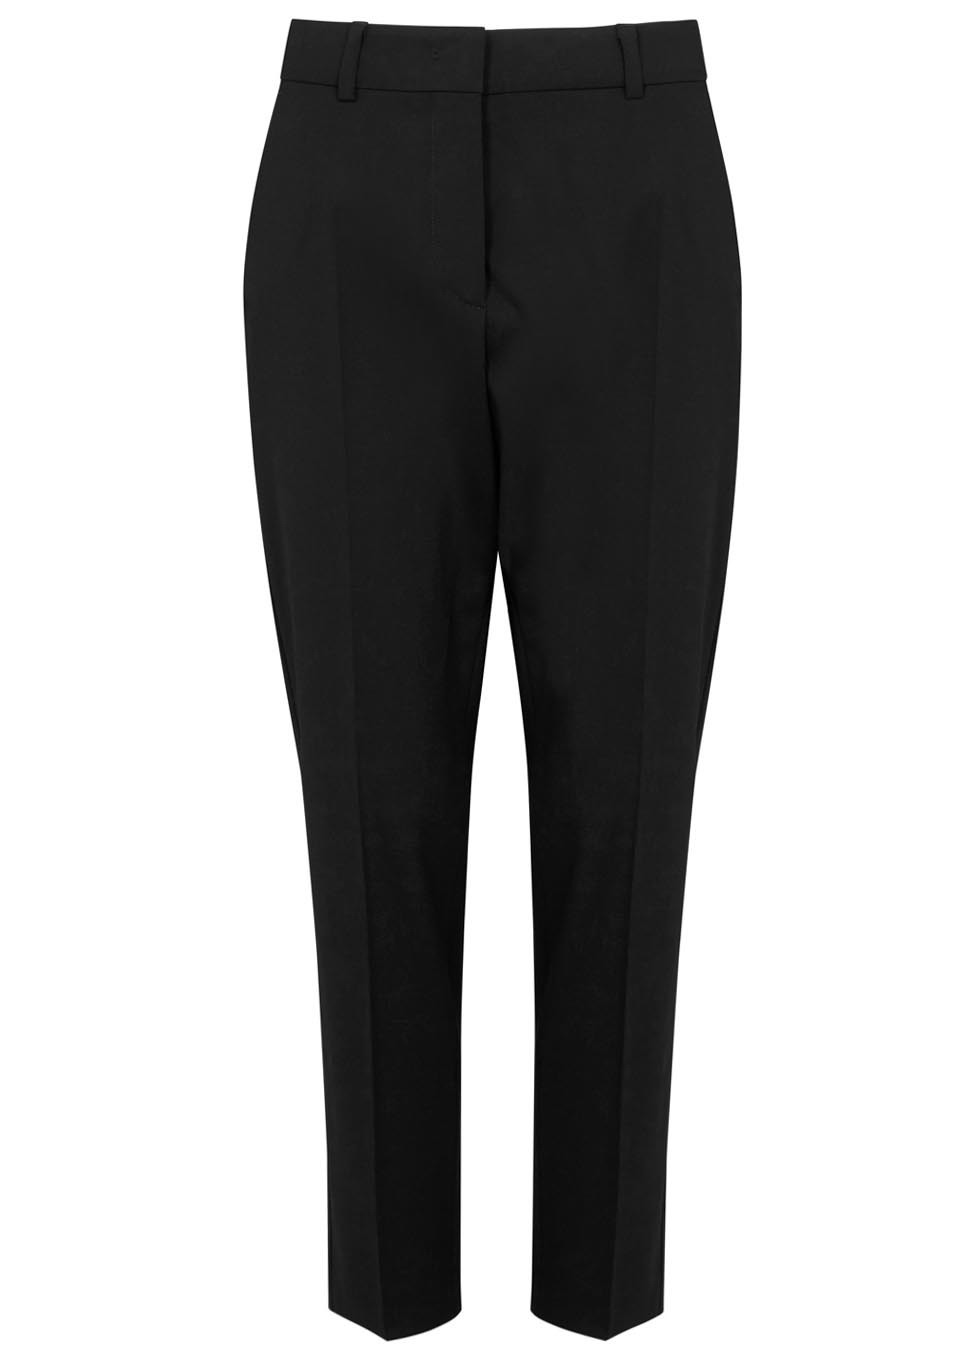 Black Cropped Stretch Wool Trousers - length: standard; pattern: plain; style: peg leg; waist: mid/regular rise; predominant colour: black; occasions: work, creative work; fibres: wool - stretch; fit: tapered; pattern type: fabric; texture group: woven light midweight; season: s/s 2016